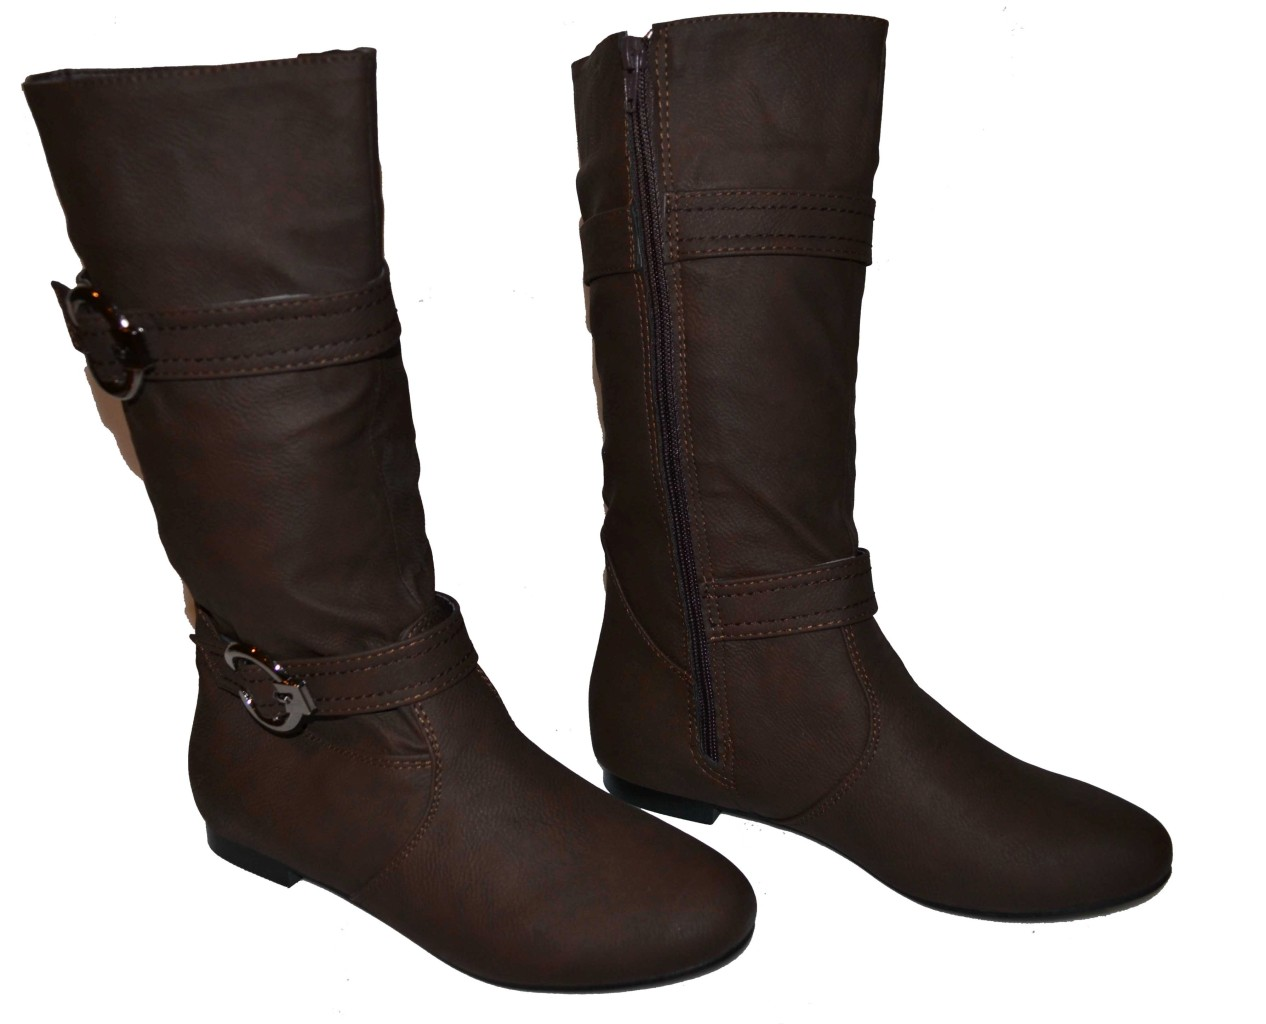 womens boots flats calf high slouch w buckles brown